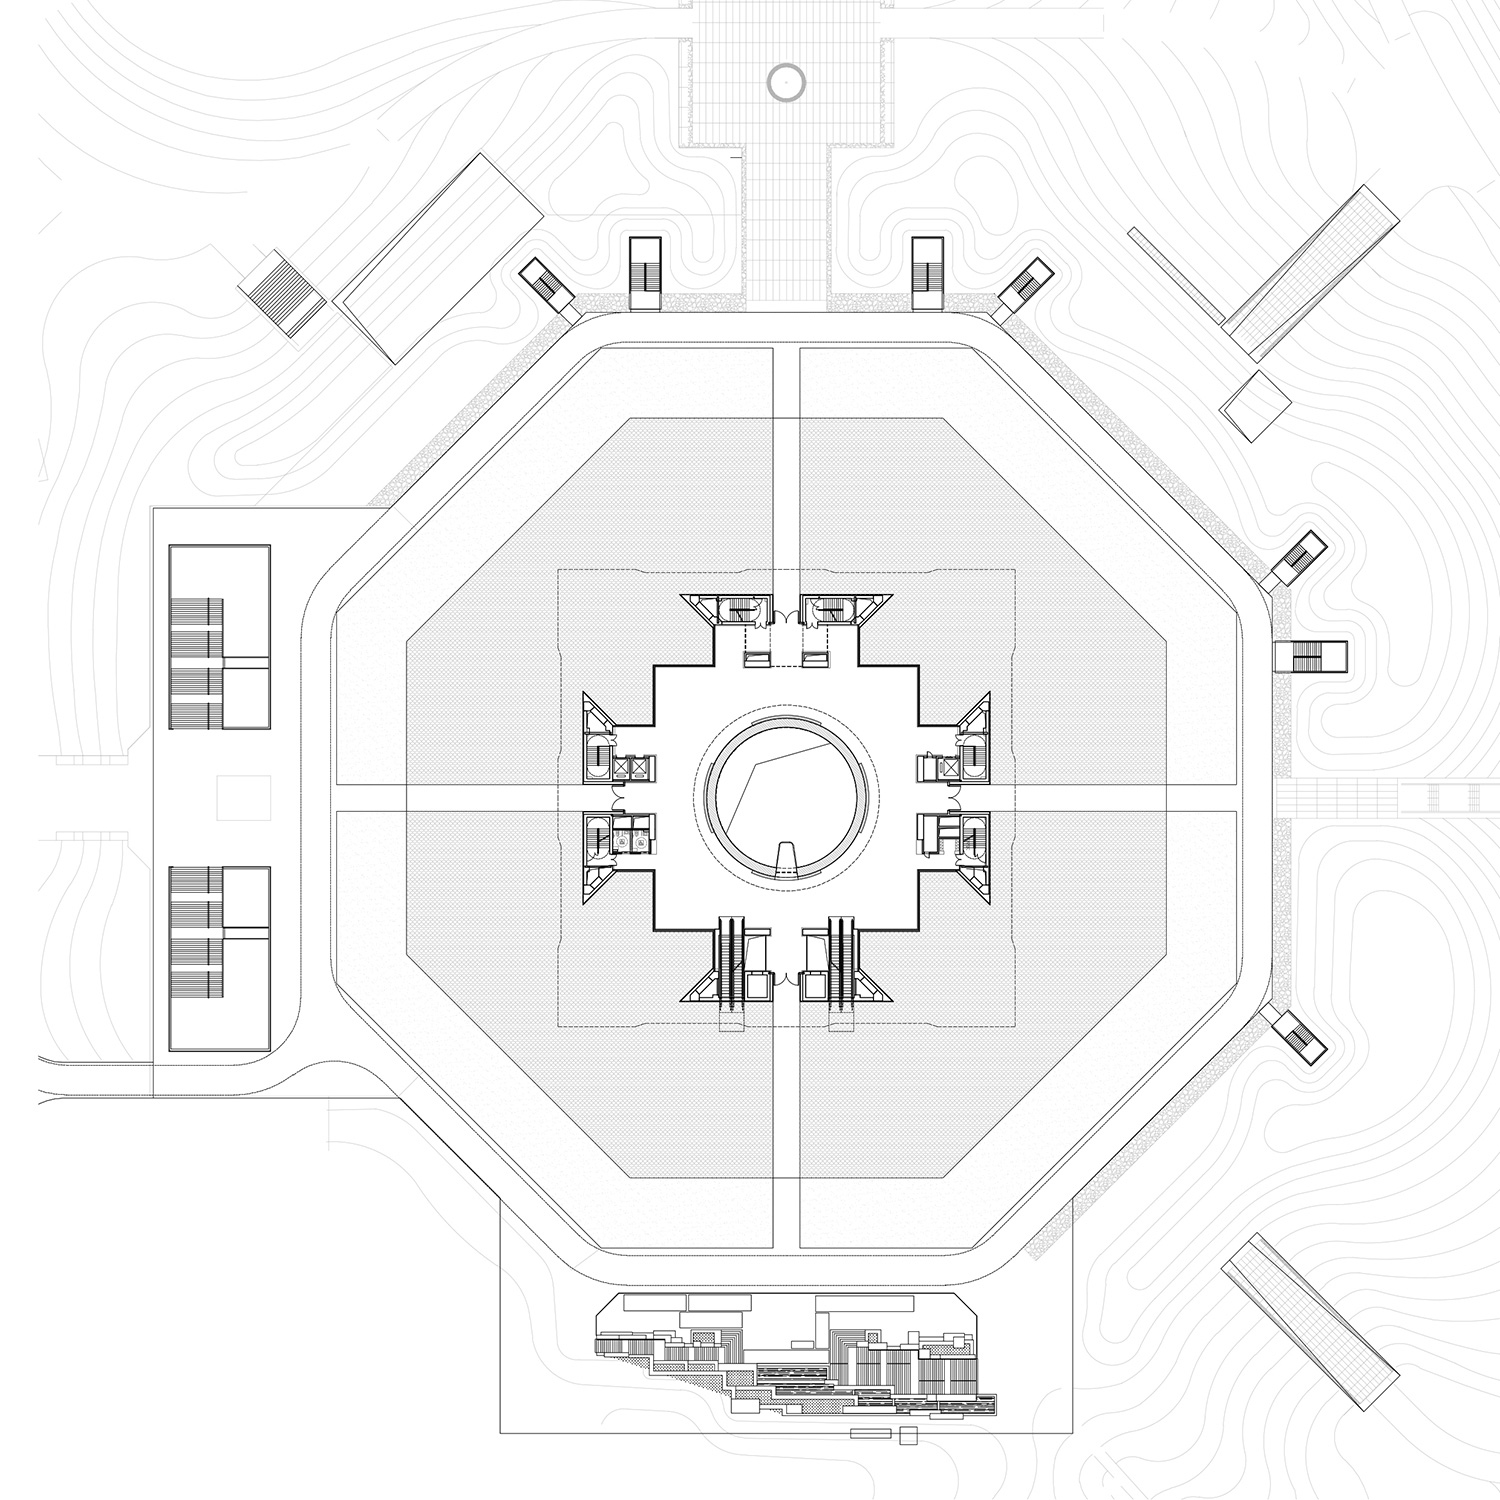 300 - 1st Floor Plan The Architectural Design & Research Institute of Zhejiang University}